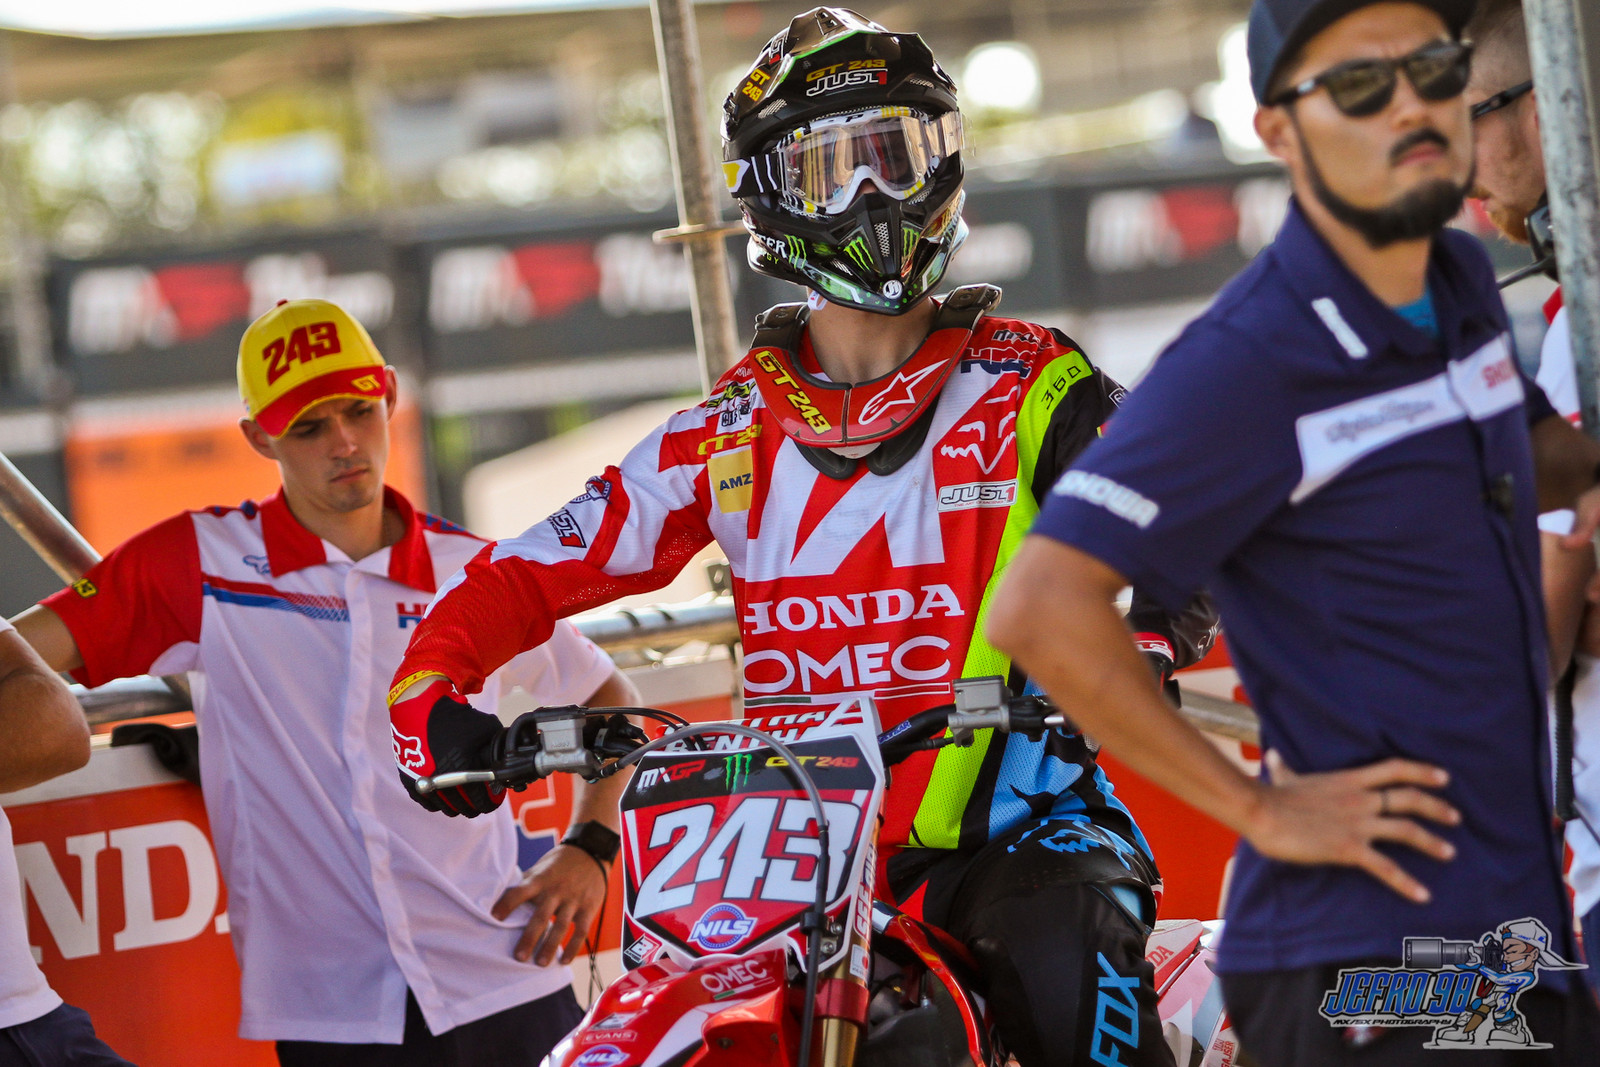 Tim Gajser - Photo Gallery: MXGP of the Netherlands - Motocross Pictures - Vital MX